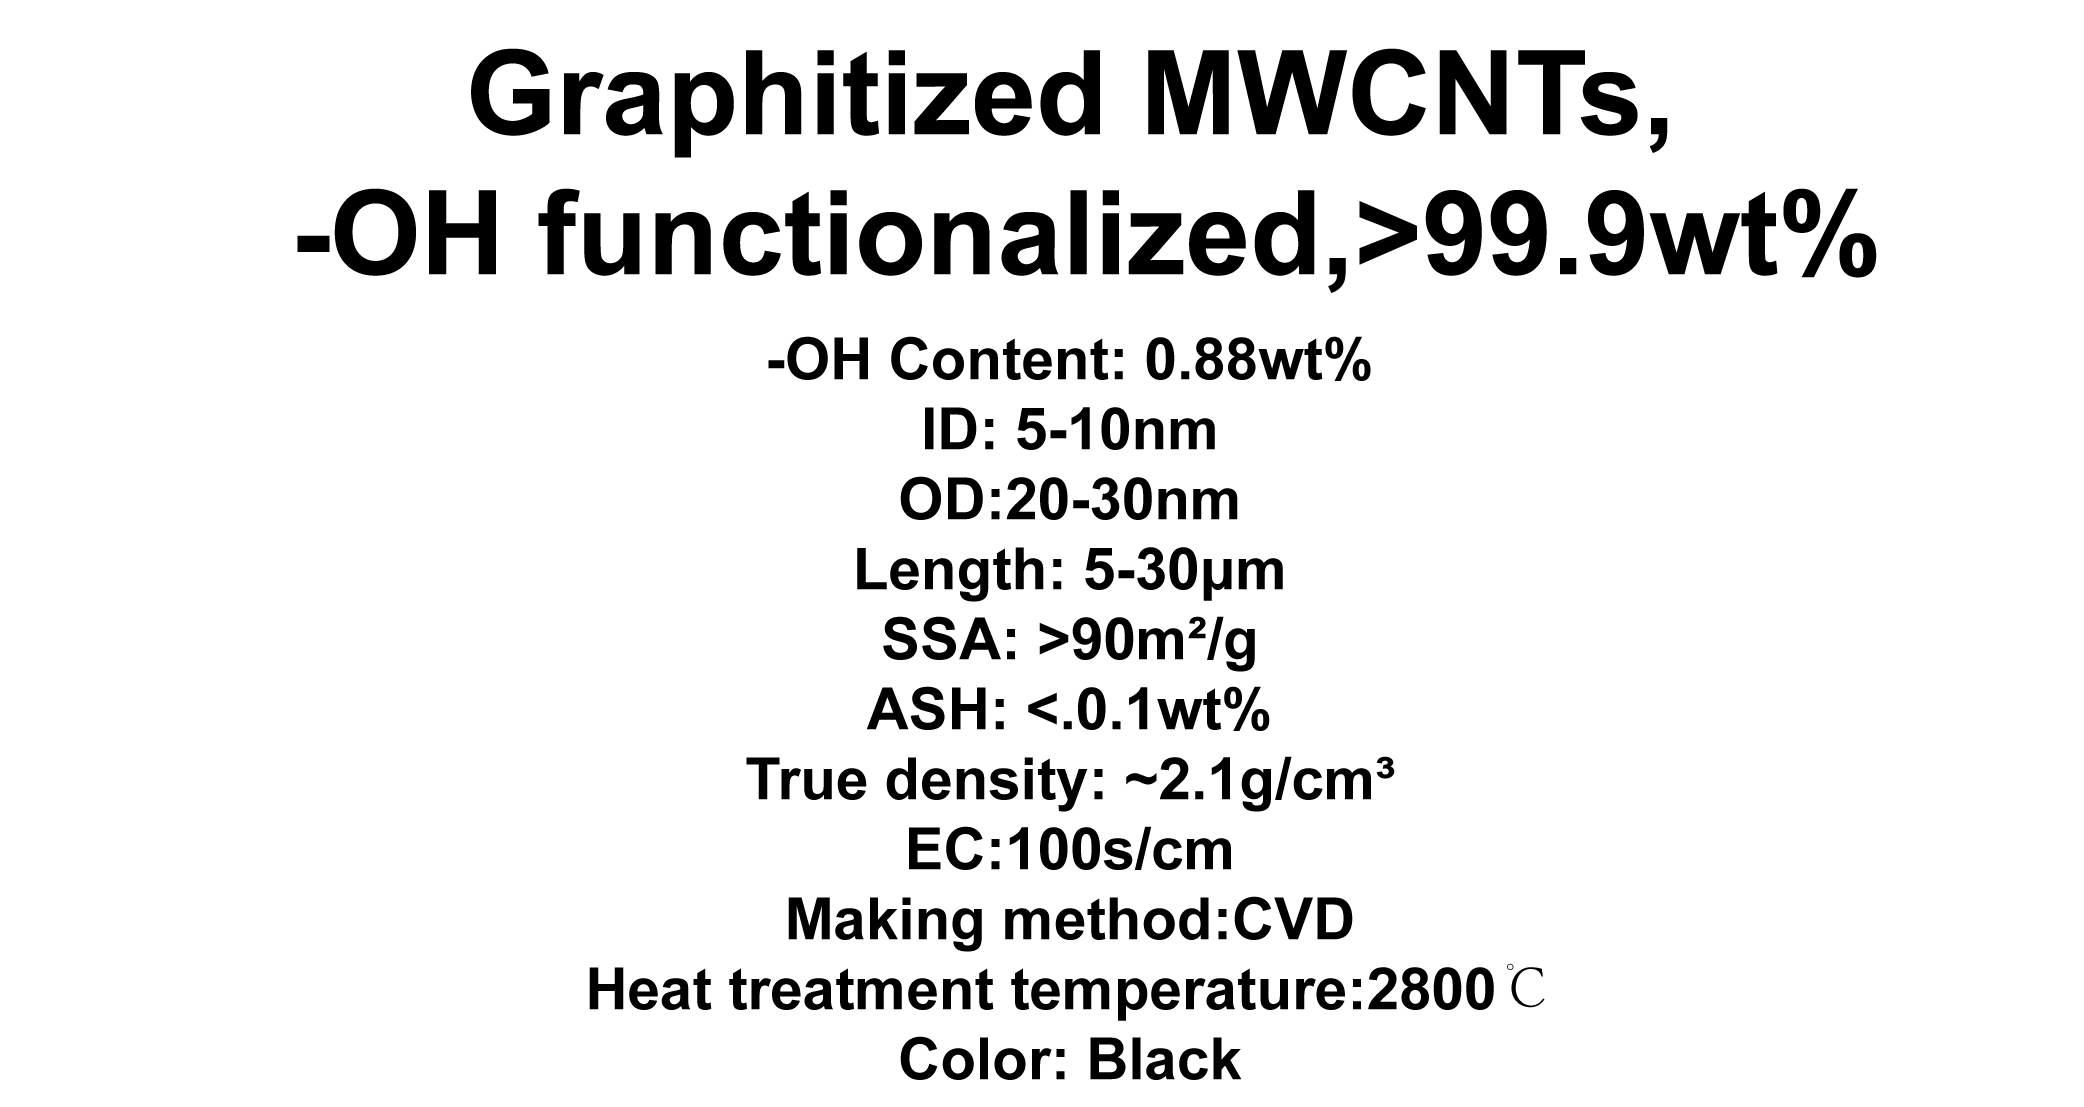 Graphitized MWCNTs, -OH functionalized (TNGMH5)